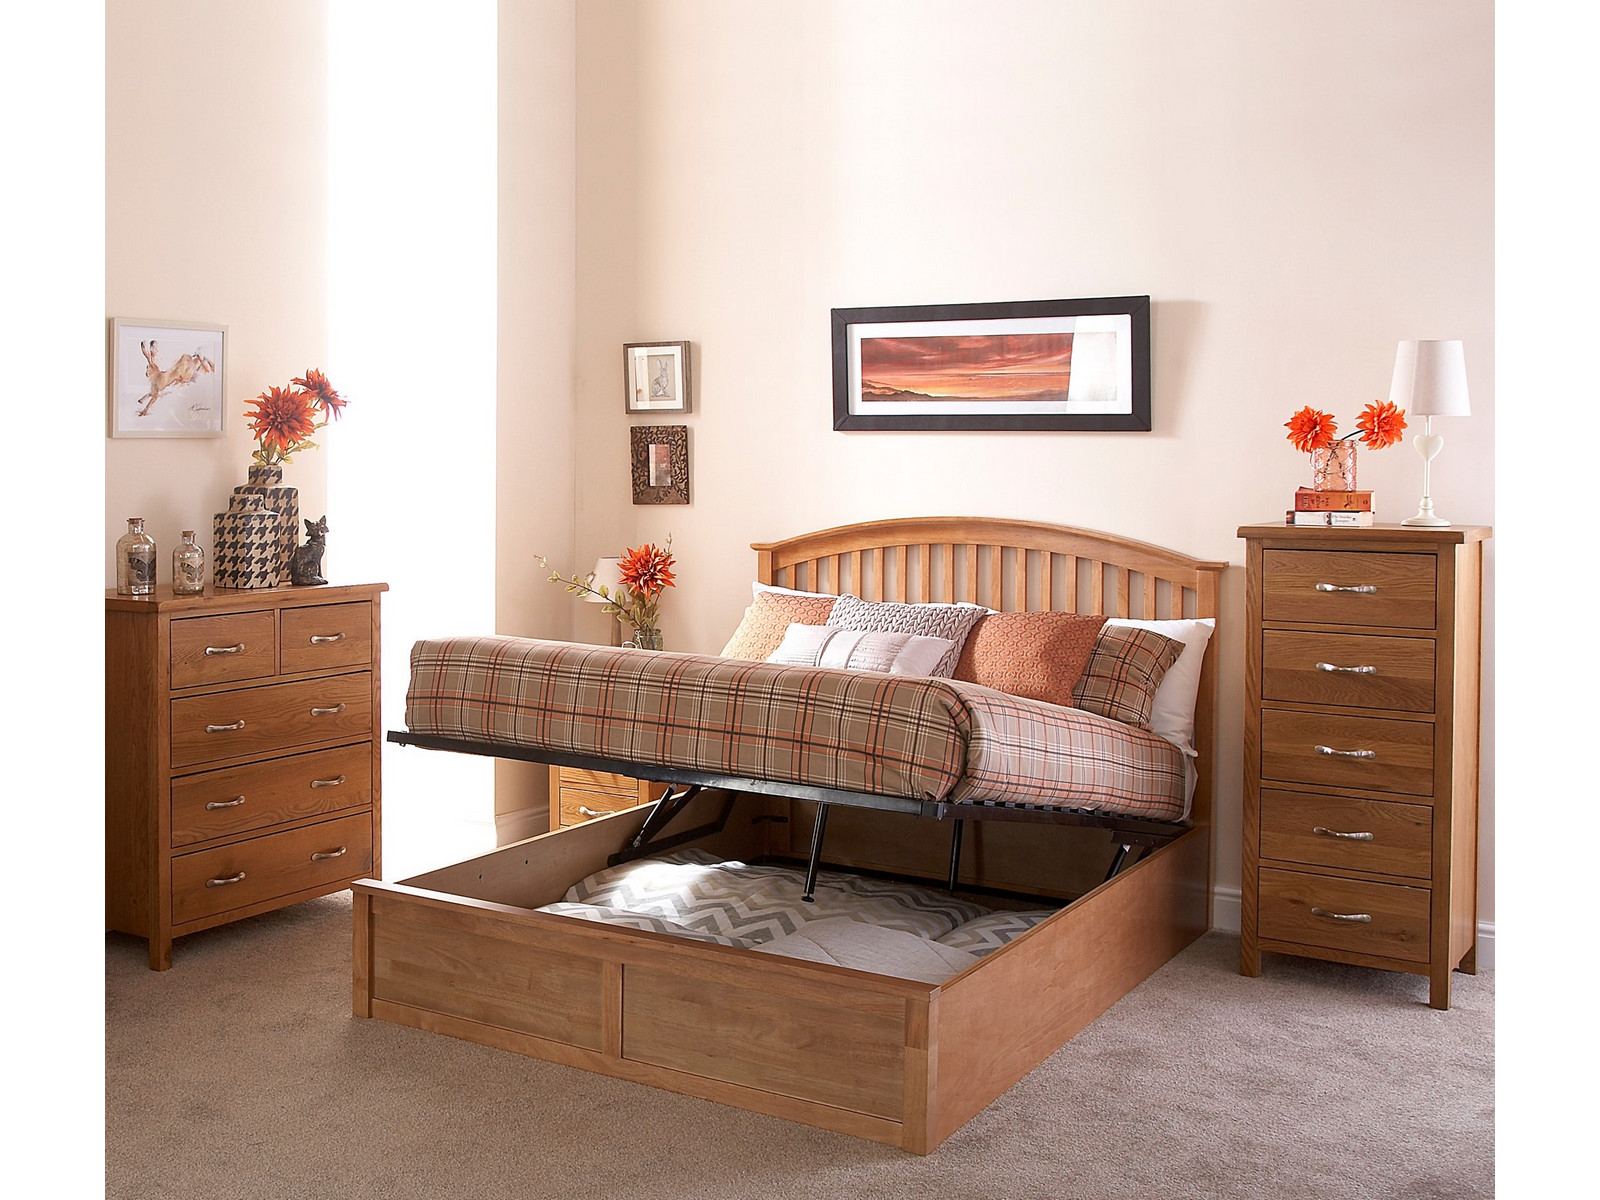 brand new 87651 d33d0 Details about Madrid 4ft6 Double Wooden Ottoman Bed - Oak - Shaker Style  Curved Headboard